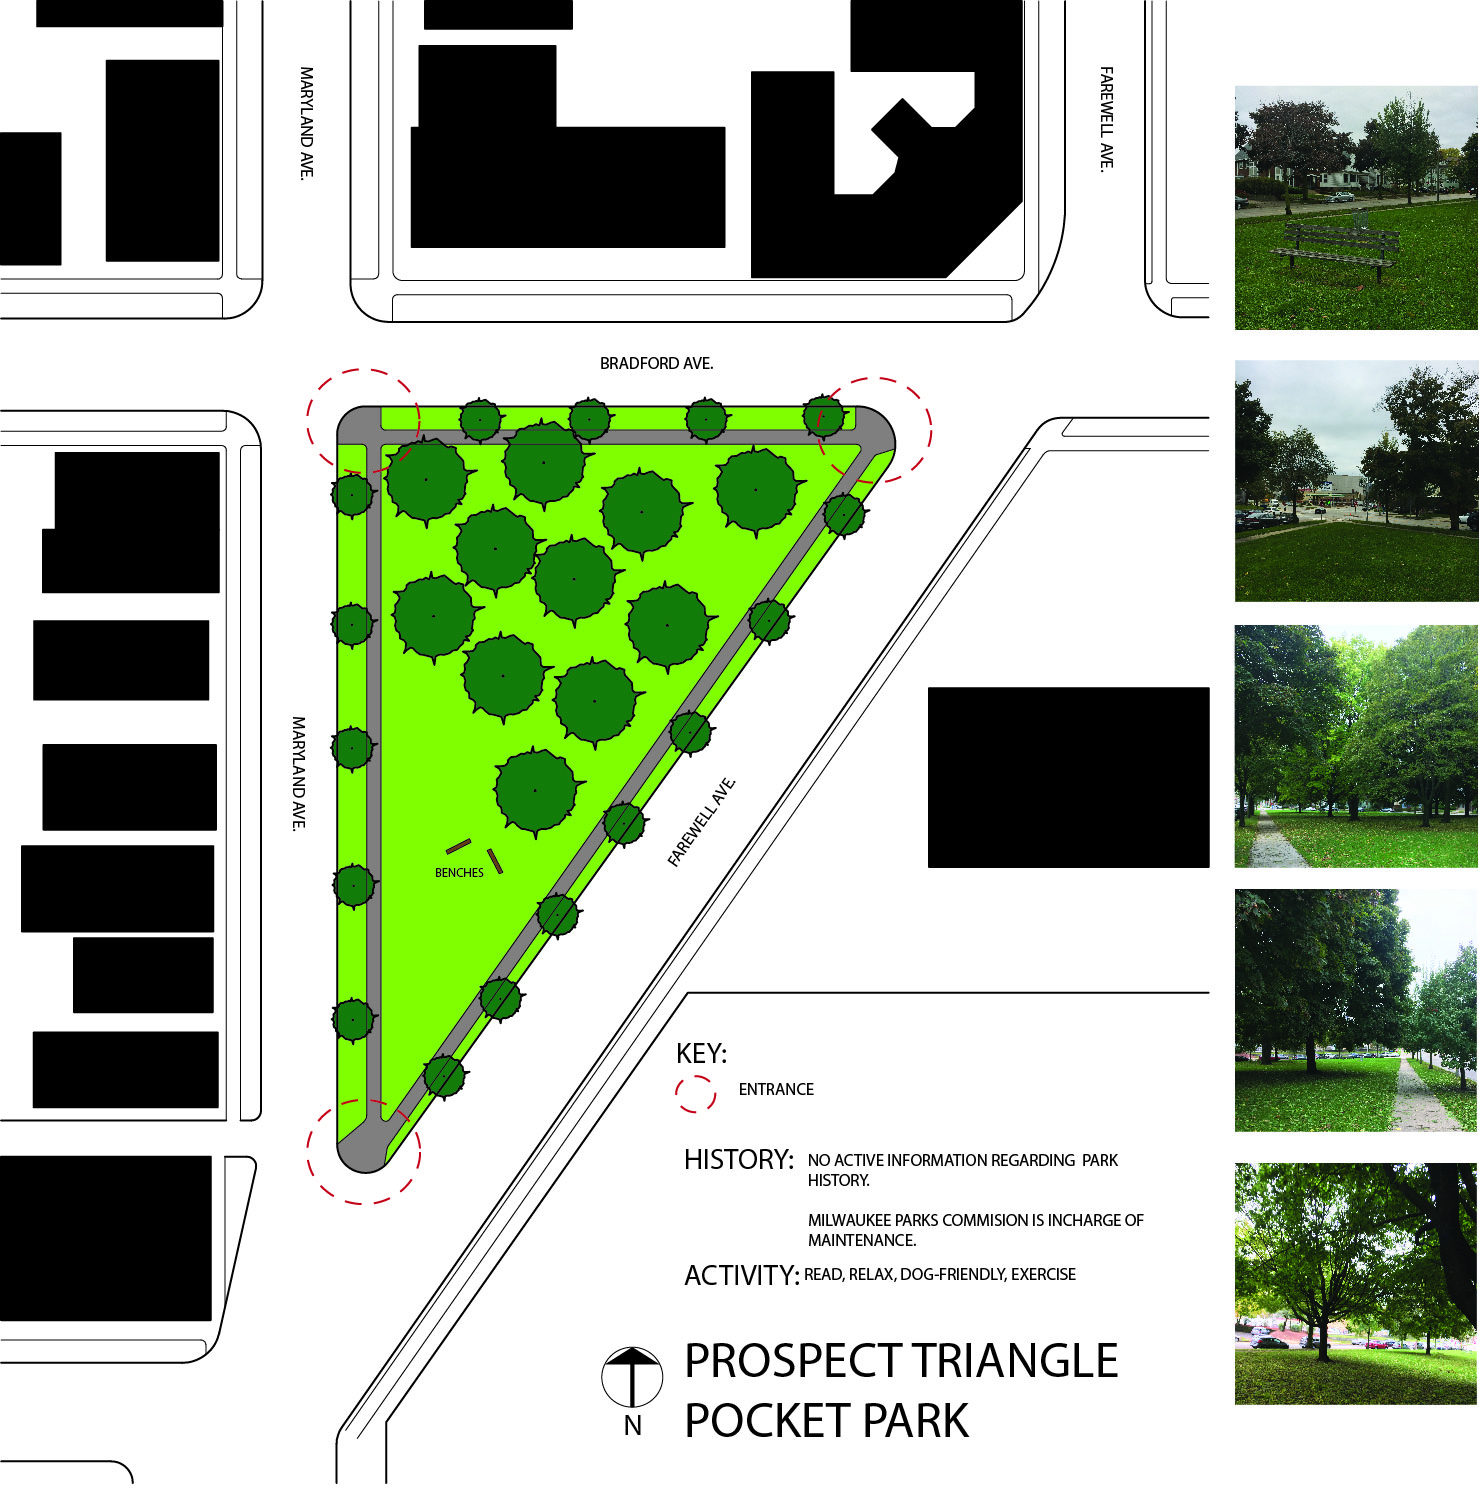 Images 1477793099 plan prospect triangle